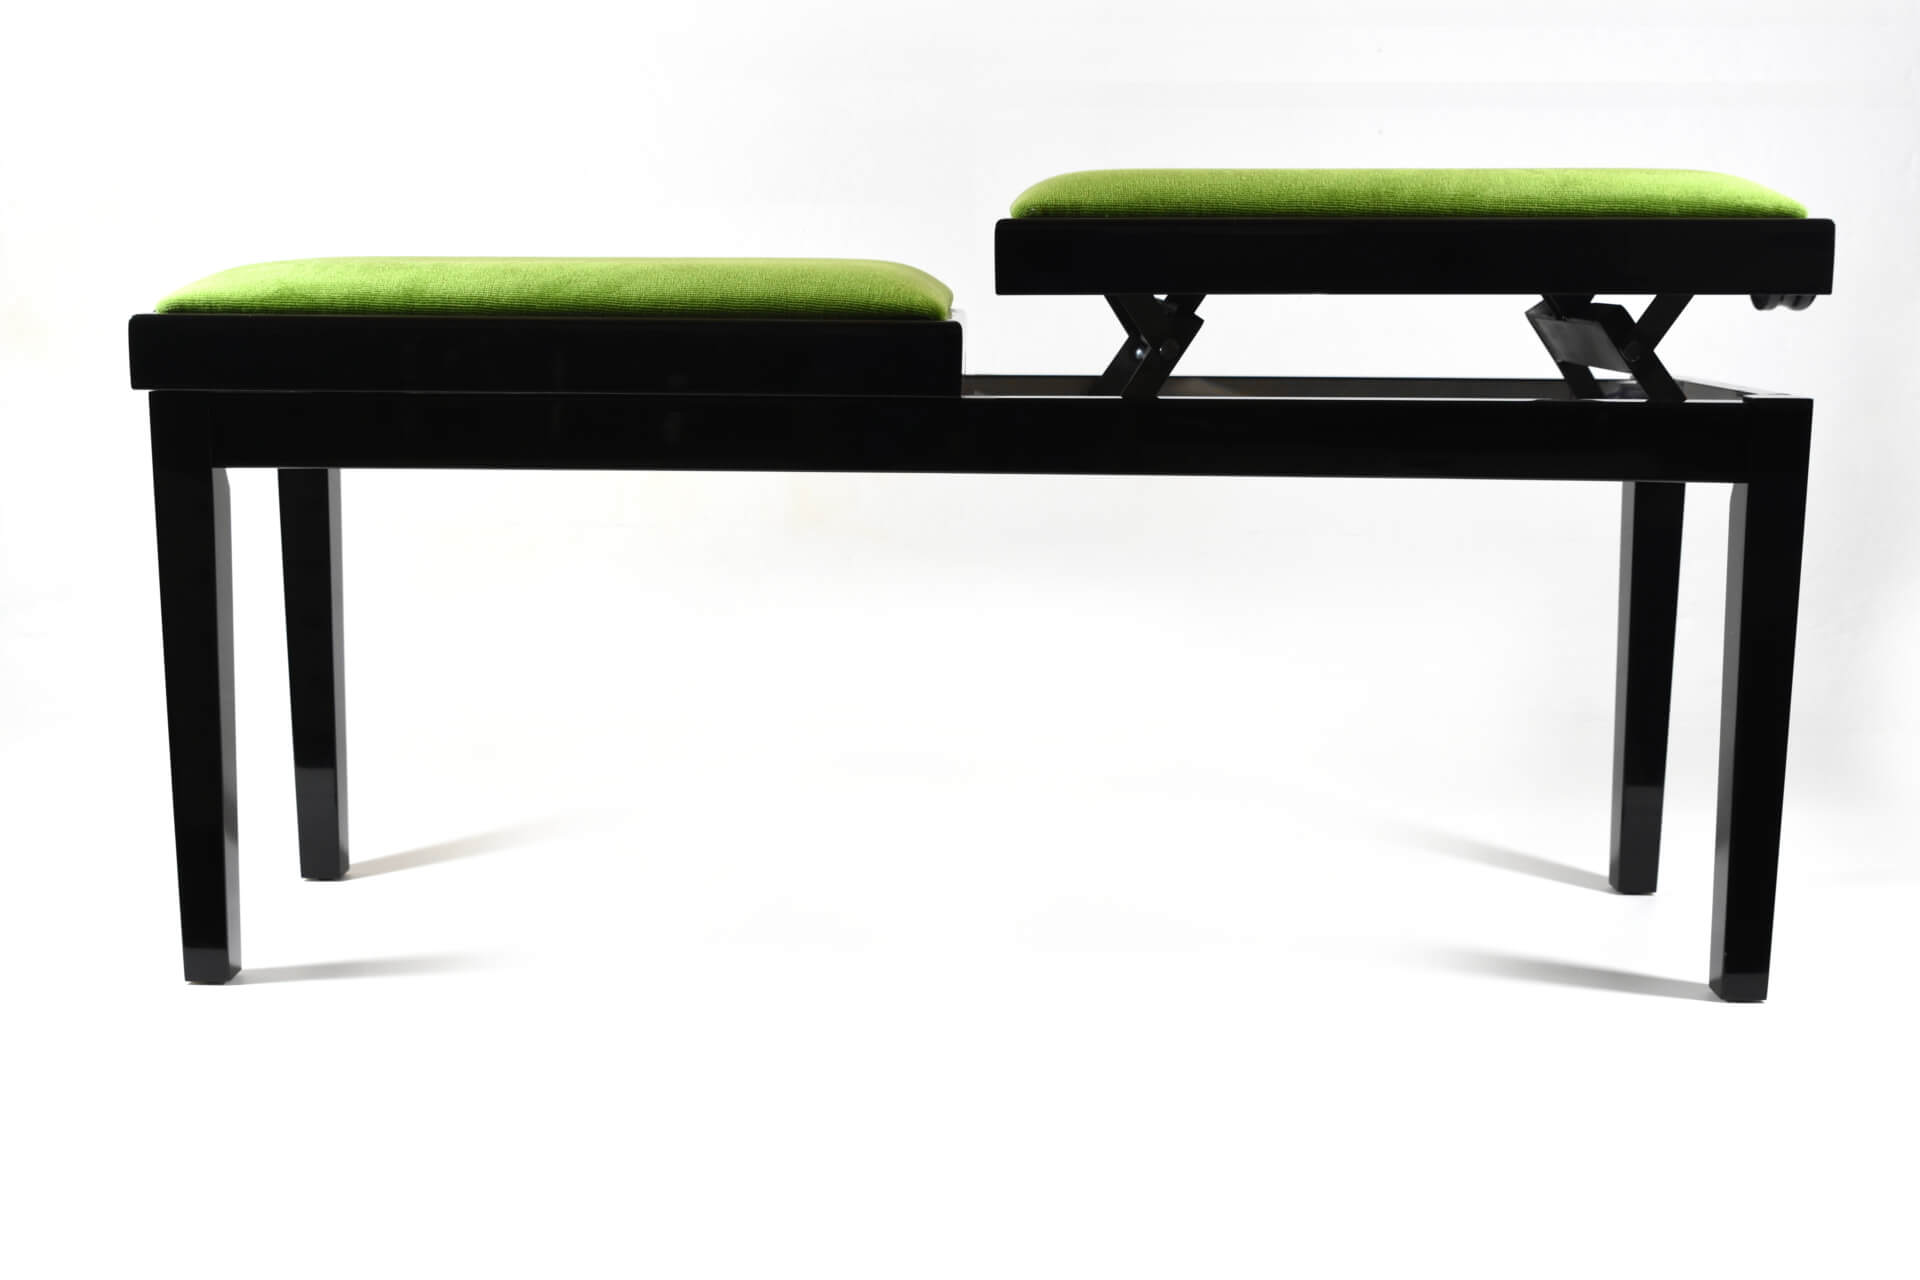 Amazing Bench For Piano Mascagni Green Velvet Machost Co Dining Chair Design Ideas Machostcouk